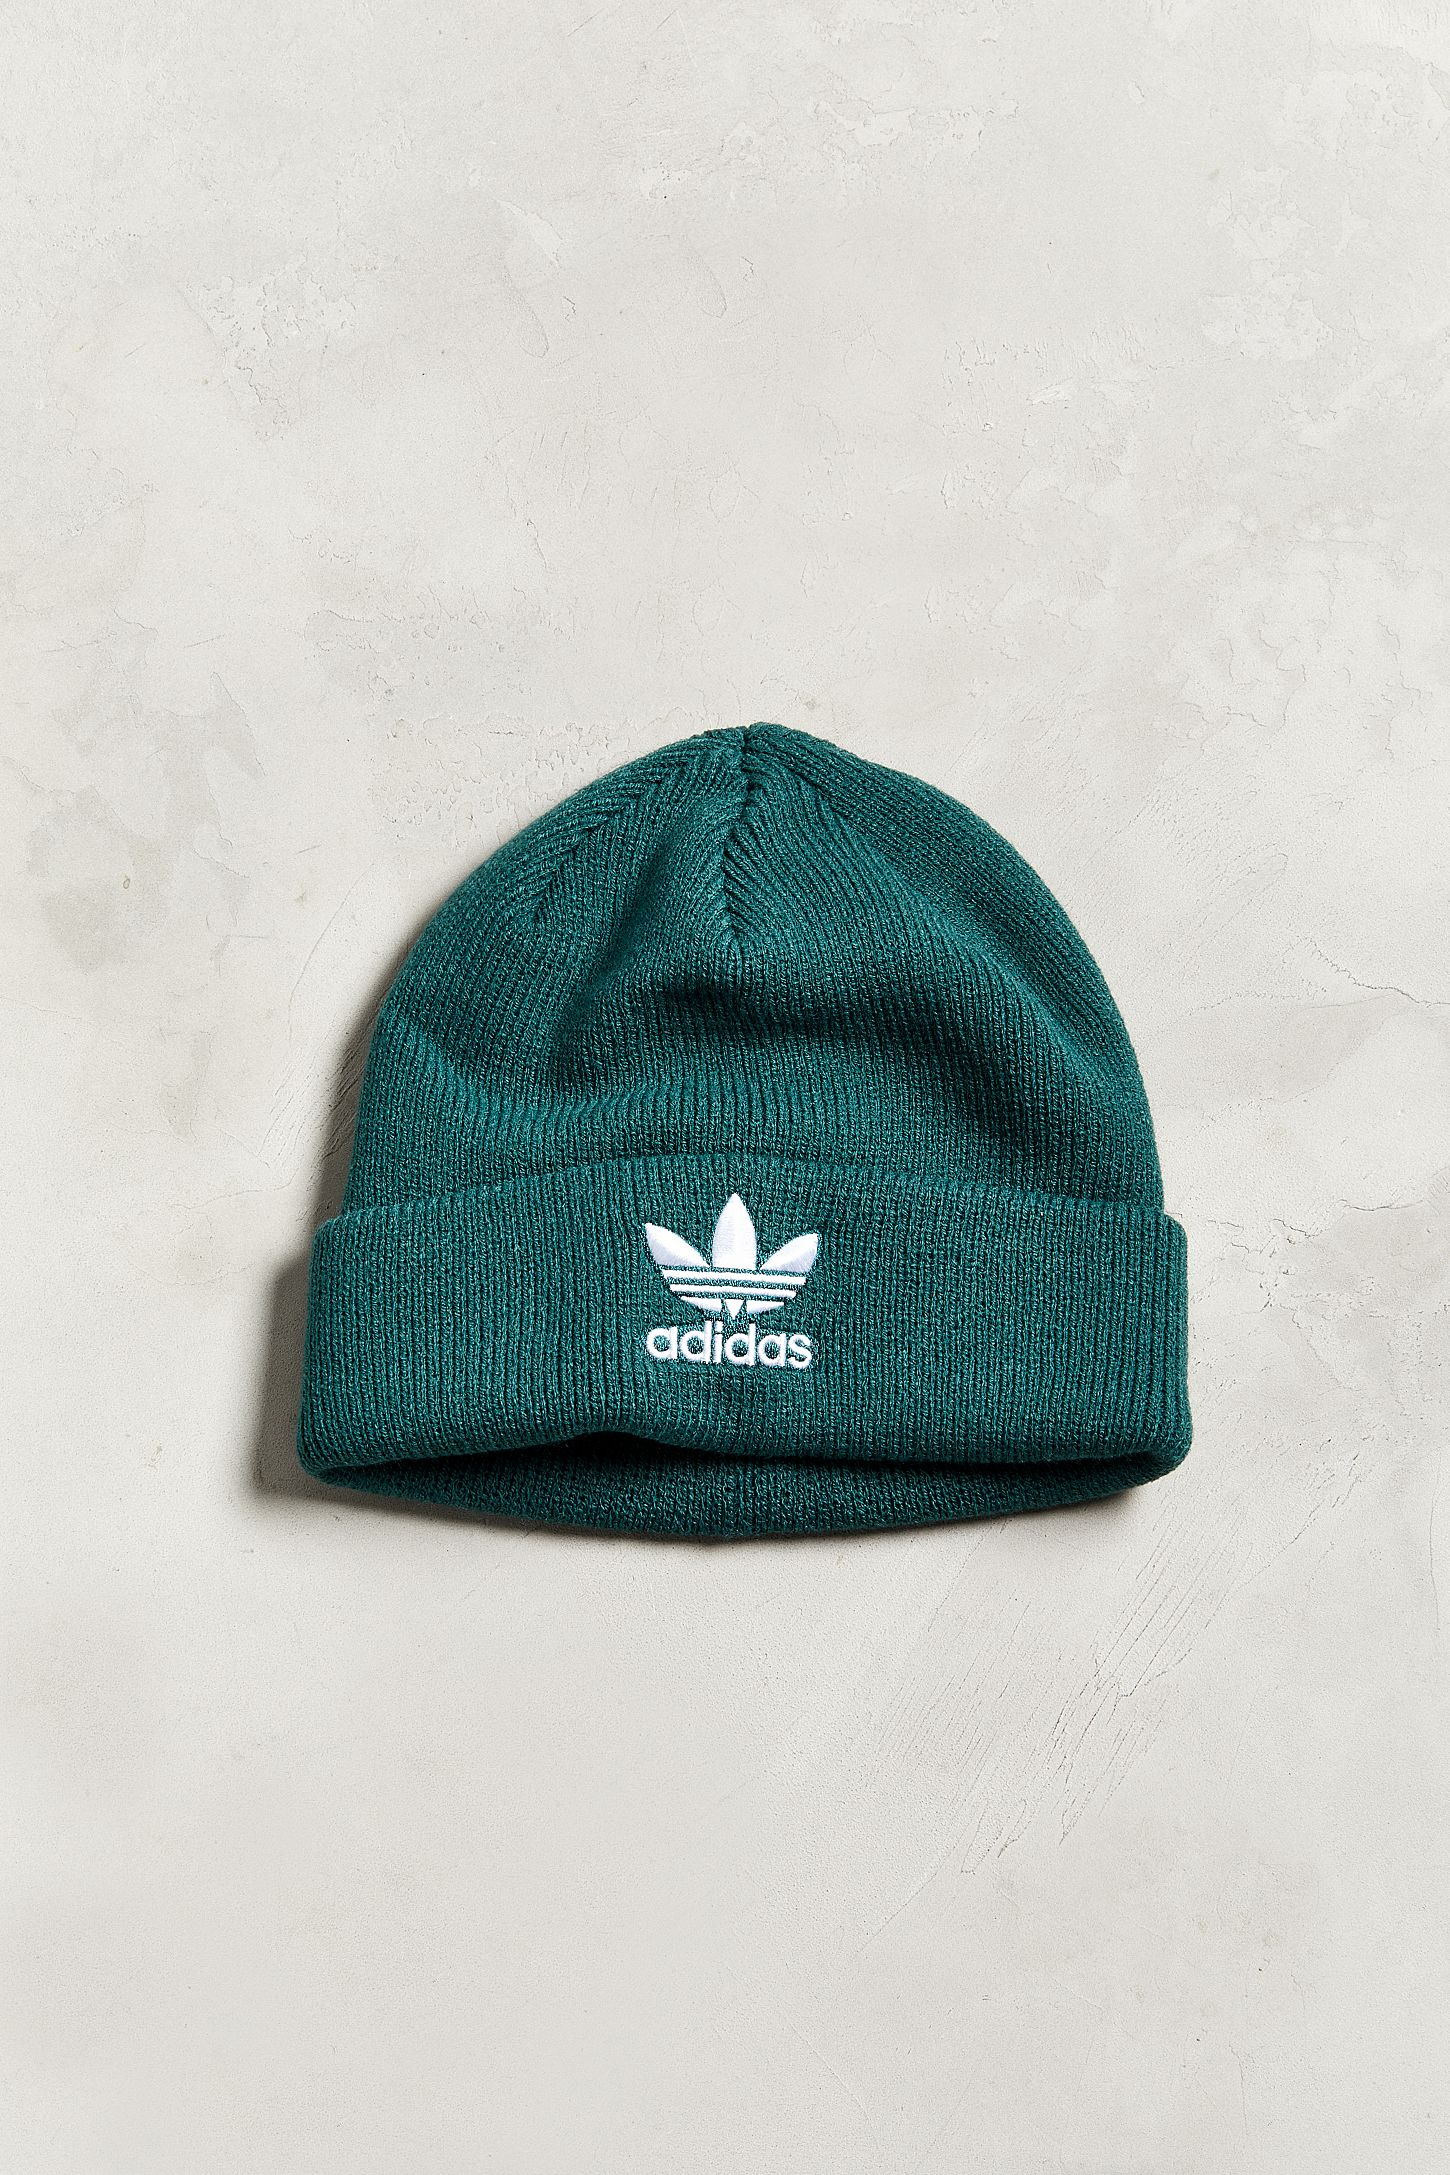 ccda9339349 adidas Originals Trefoil Green Beanie. Tap image to zoom. Hover to zoom.  Double Tap to Zoom